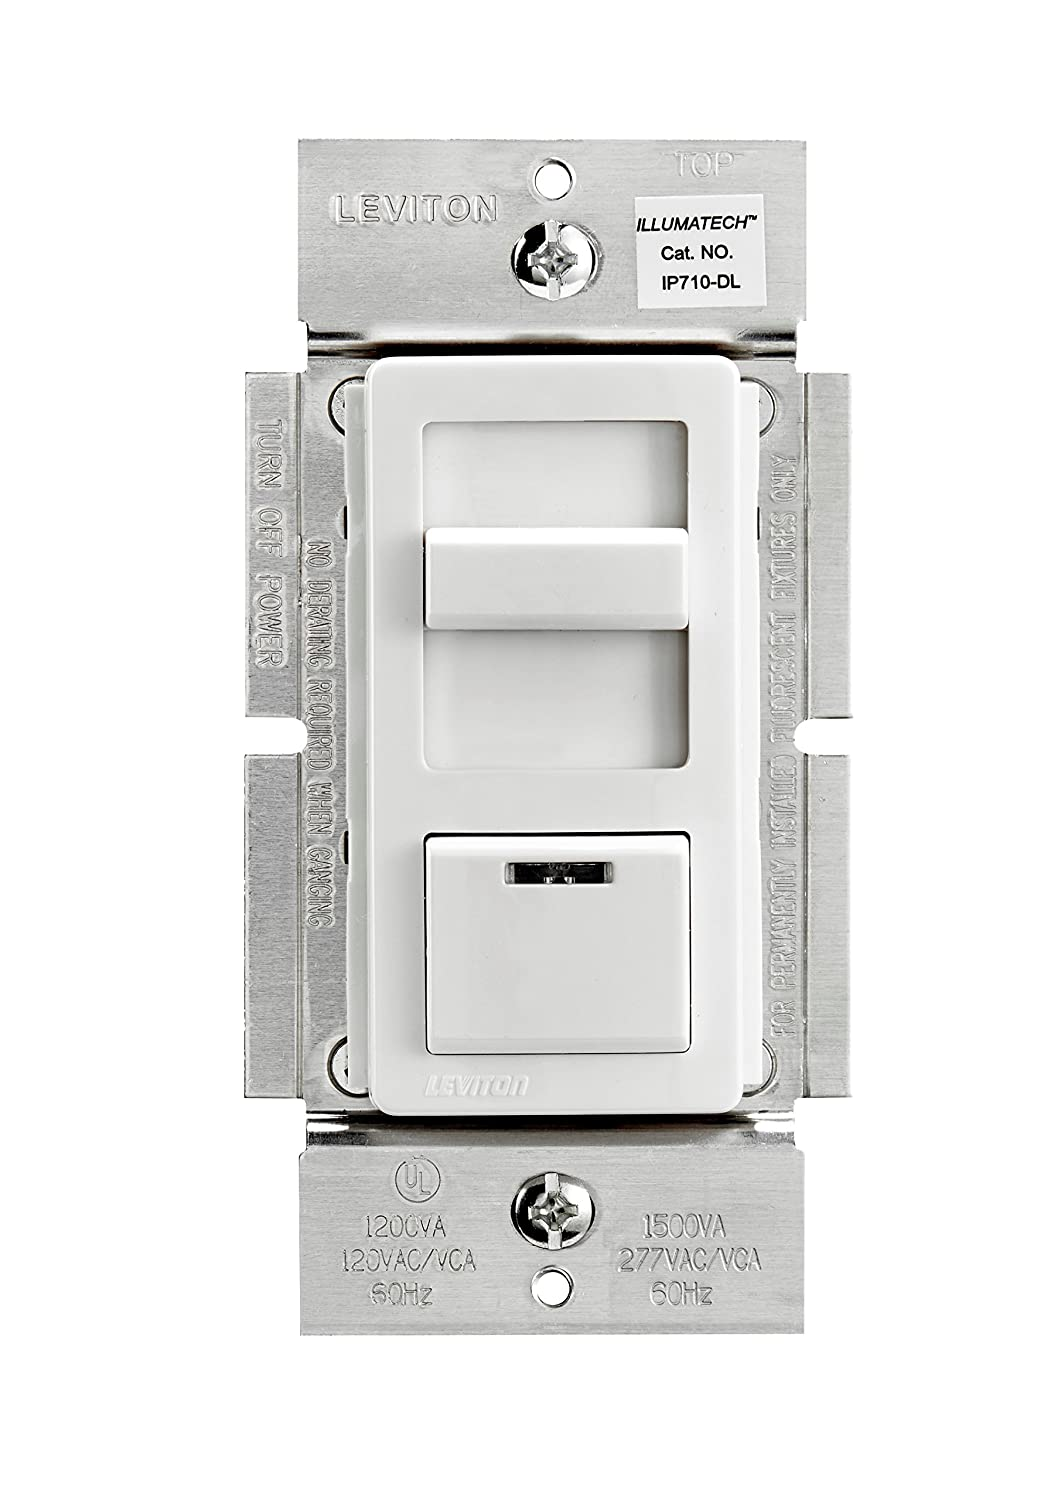 Leviton ip dl wiring diagram images